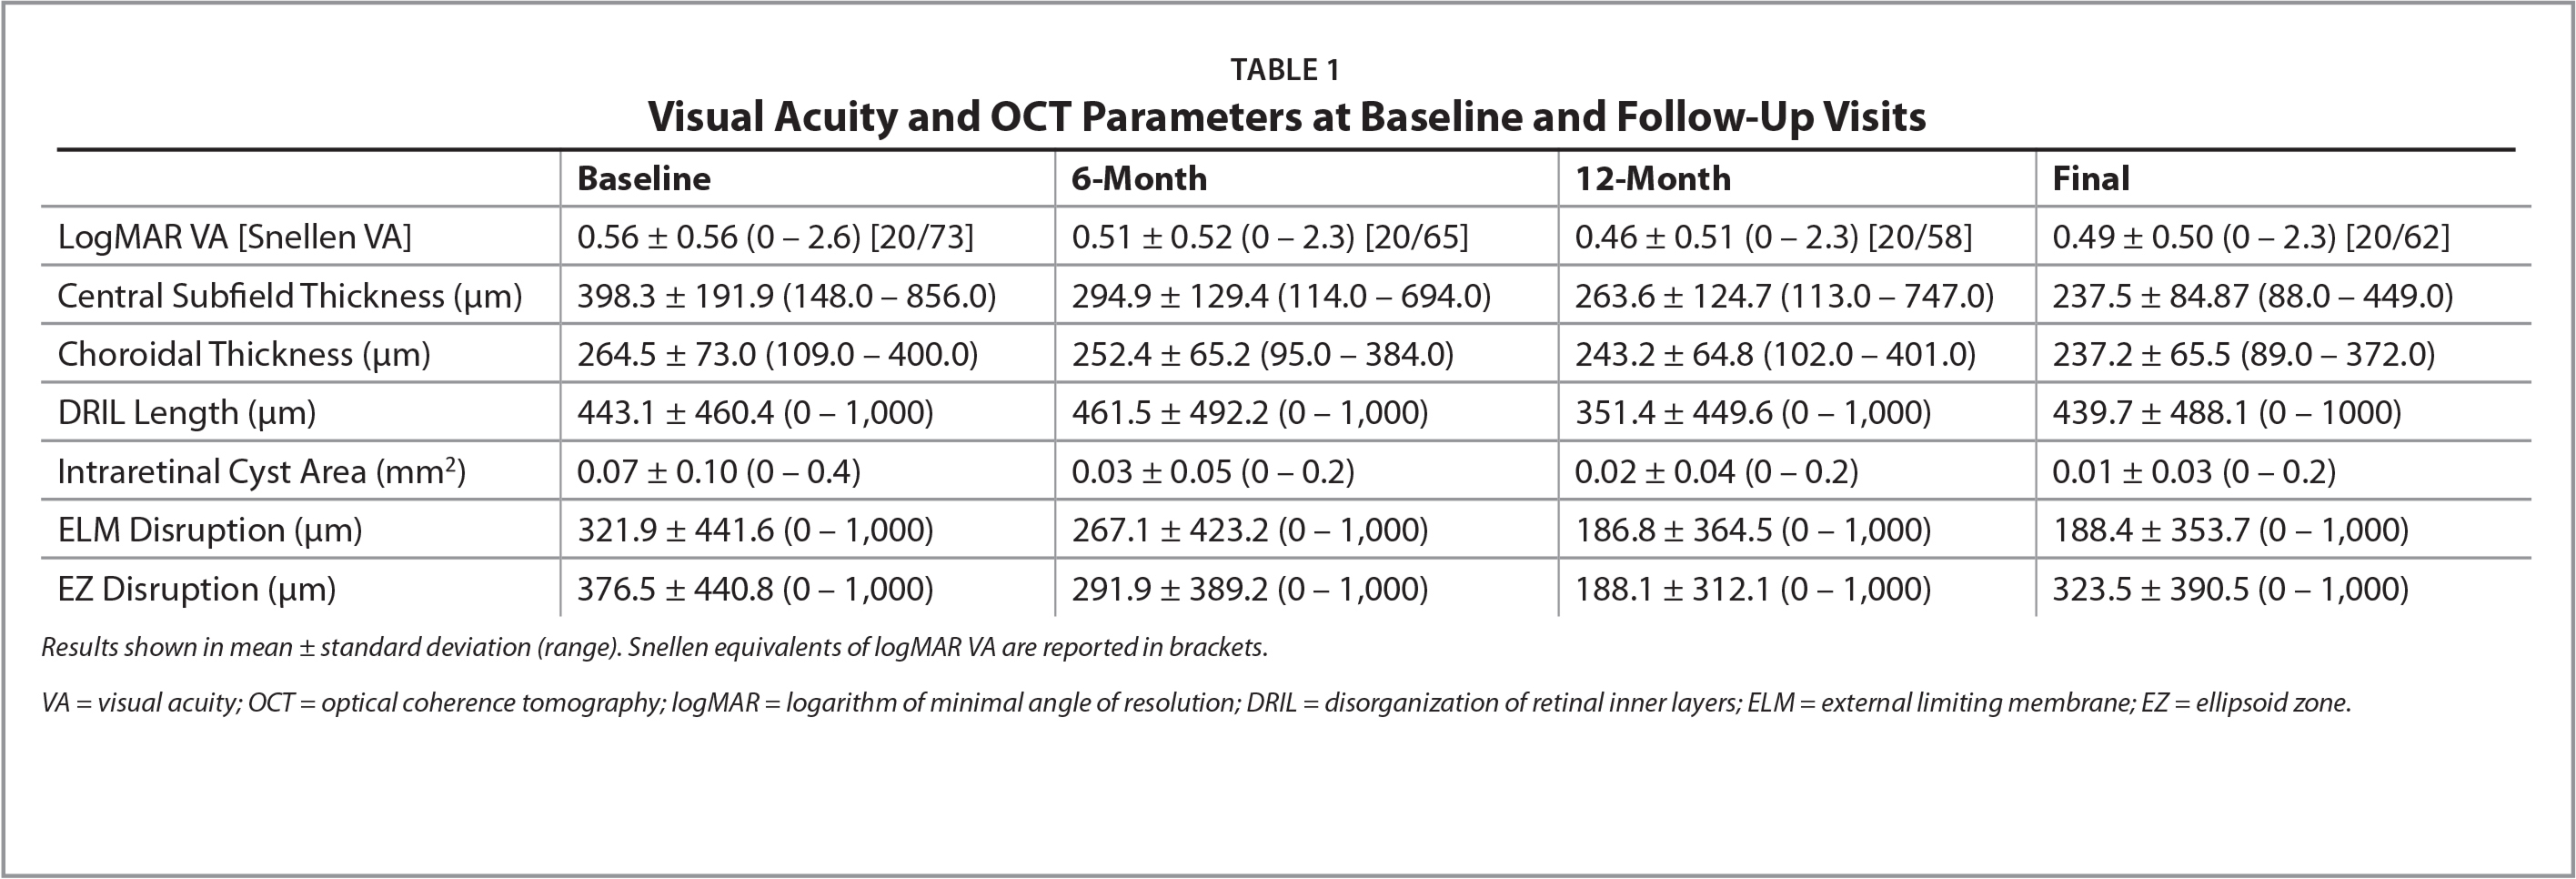 Visual Acuity and OCT Parameters at Baseline and Follow-Up Visits